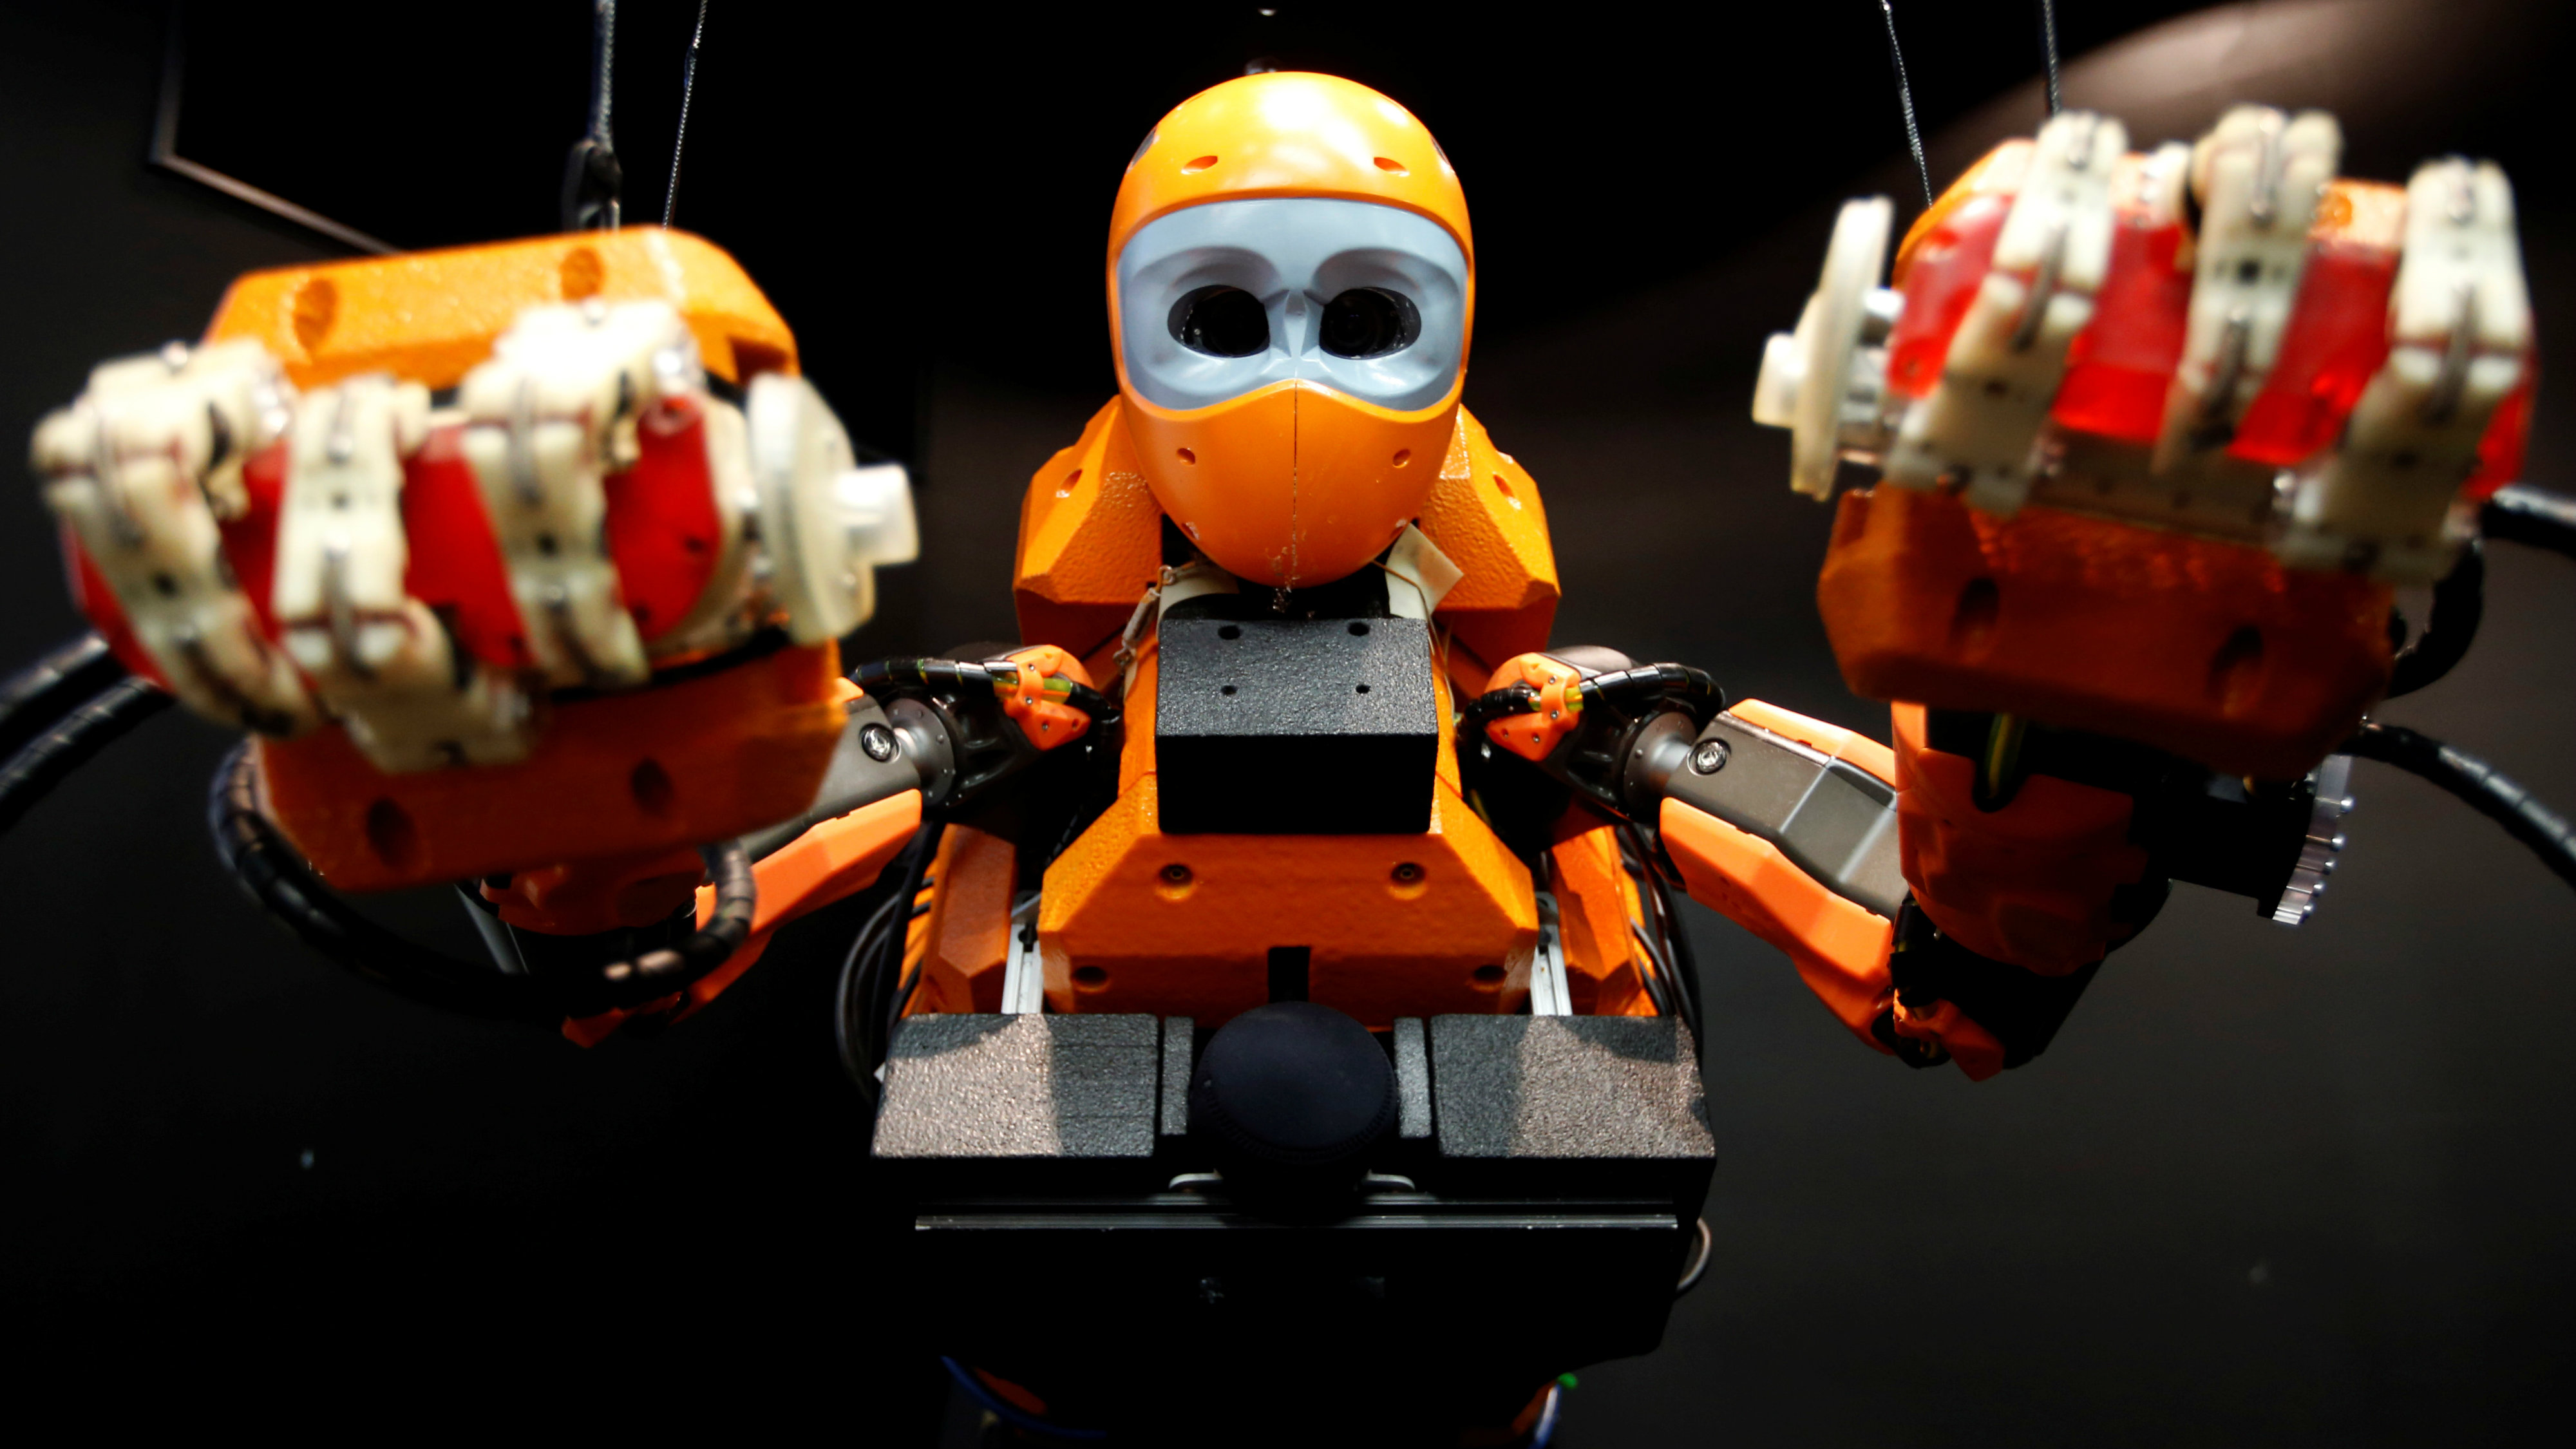 Humanoid Diving Robot OceanOne, with a humanoid torso and a mermaid-like tail section, studded with thrusters and sensors to keep the mer-bot swimming is seen during its presentation at the History Museum in Marseille, France, April 28, 2016.